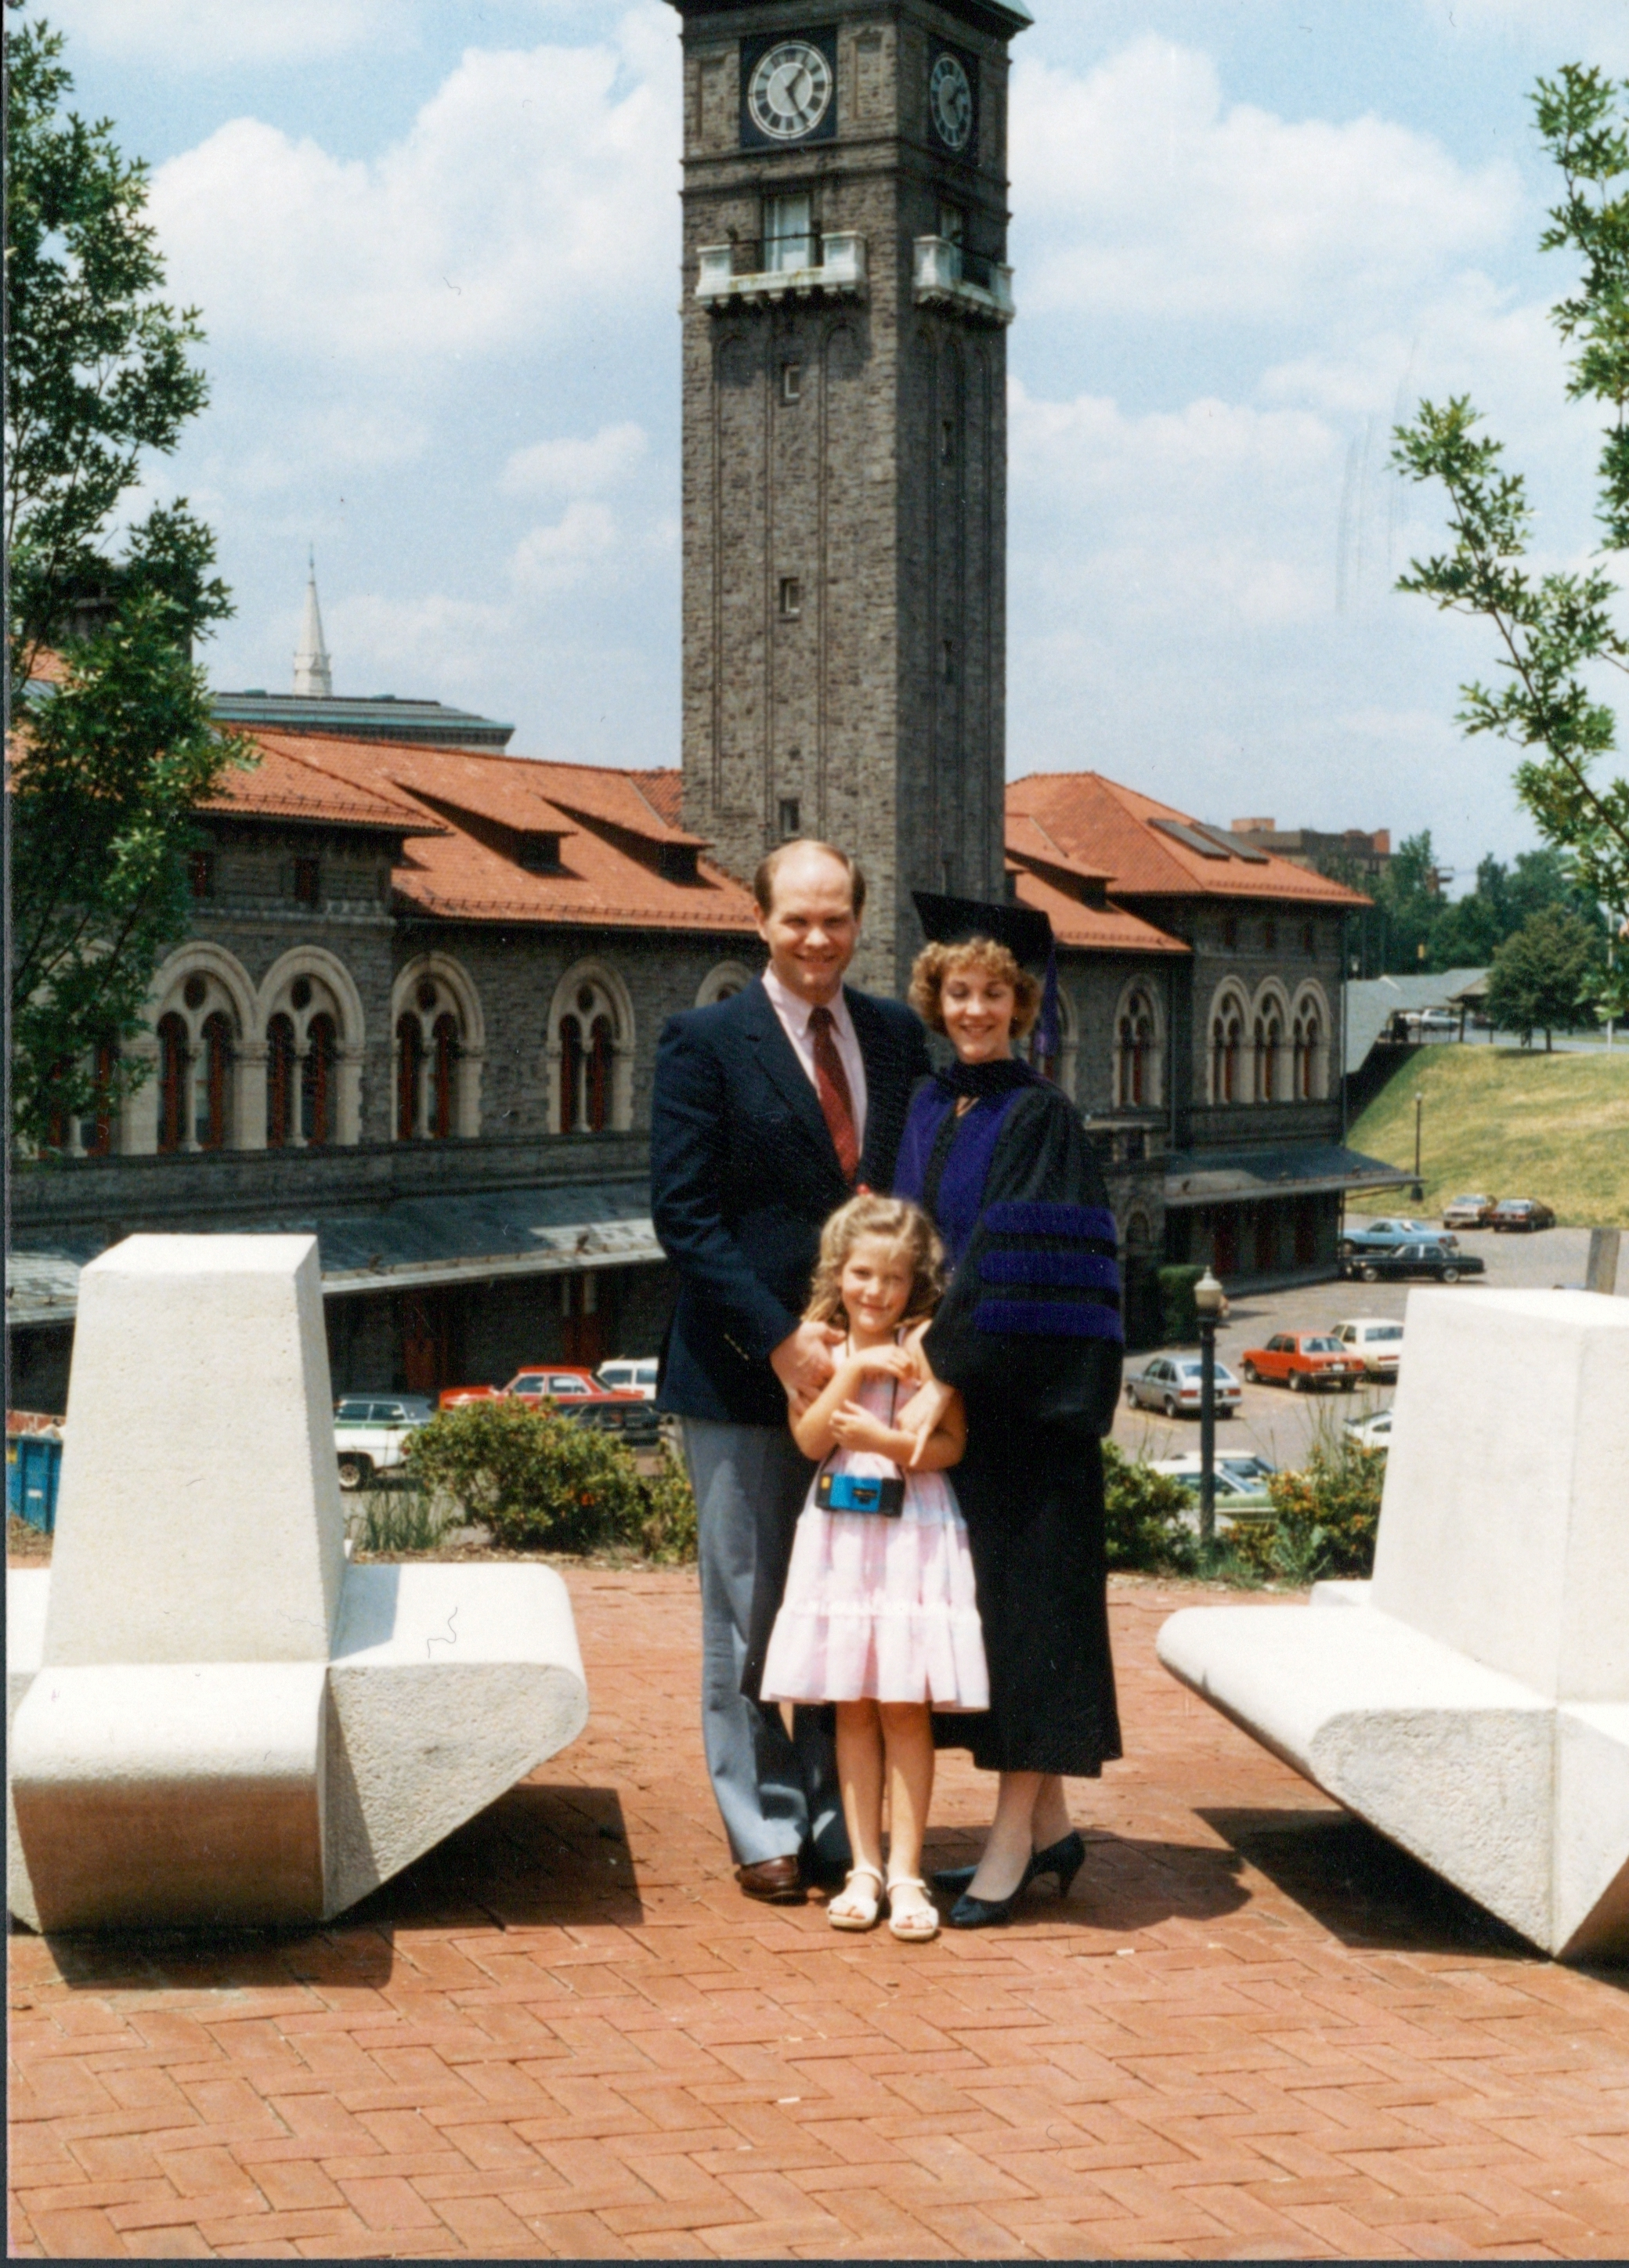 Elder Dale G. Renlund and his wife, Sister Ruth Renlund, and their daughter, Ashley, on the day Sister Renlund graduated from law school.